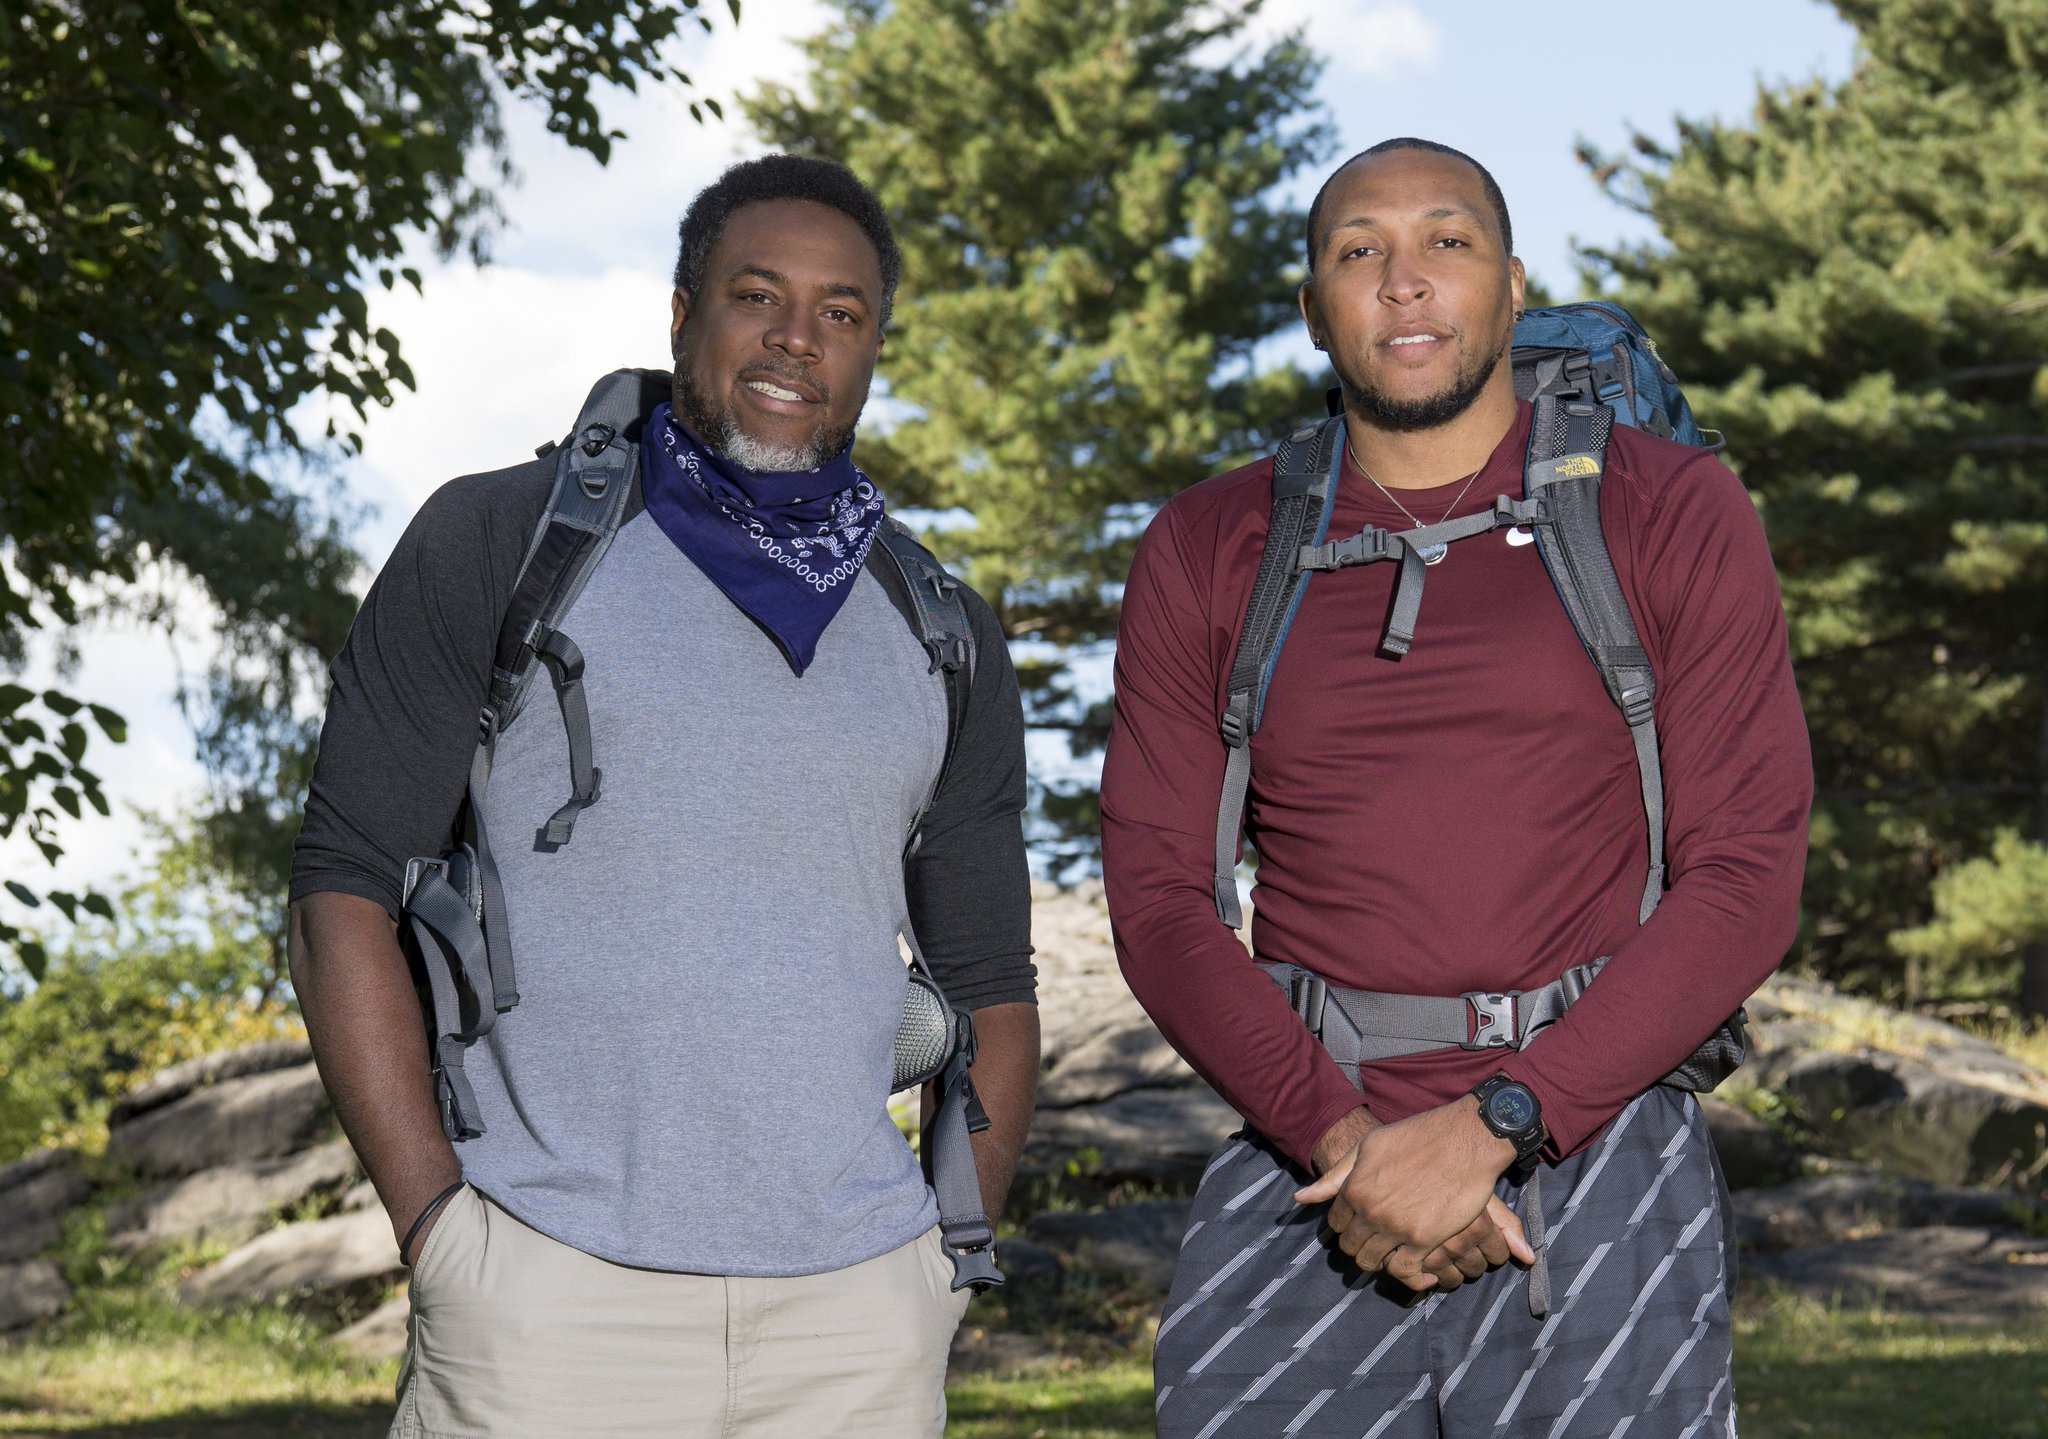 Congrats to NBA greats @cedceballos and @matrix31 who will join the 30th cast of the #AmazingRace! https://t.co/UfKksBG3FM